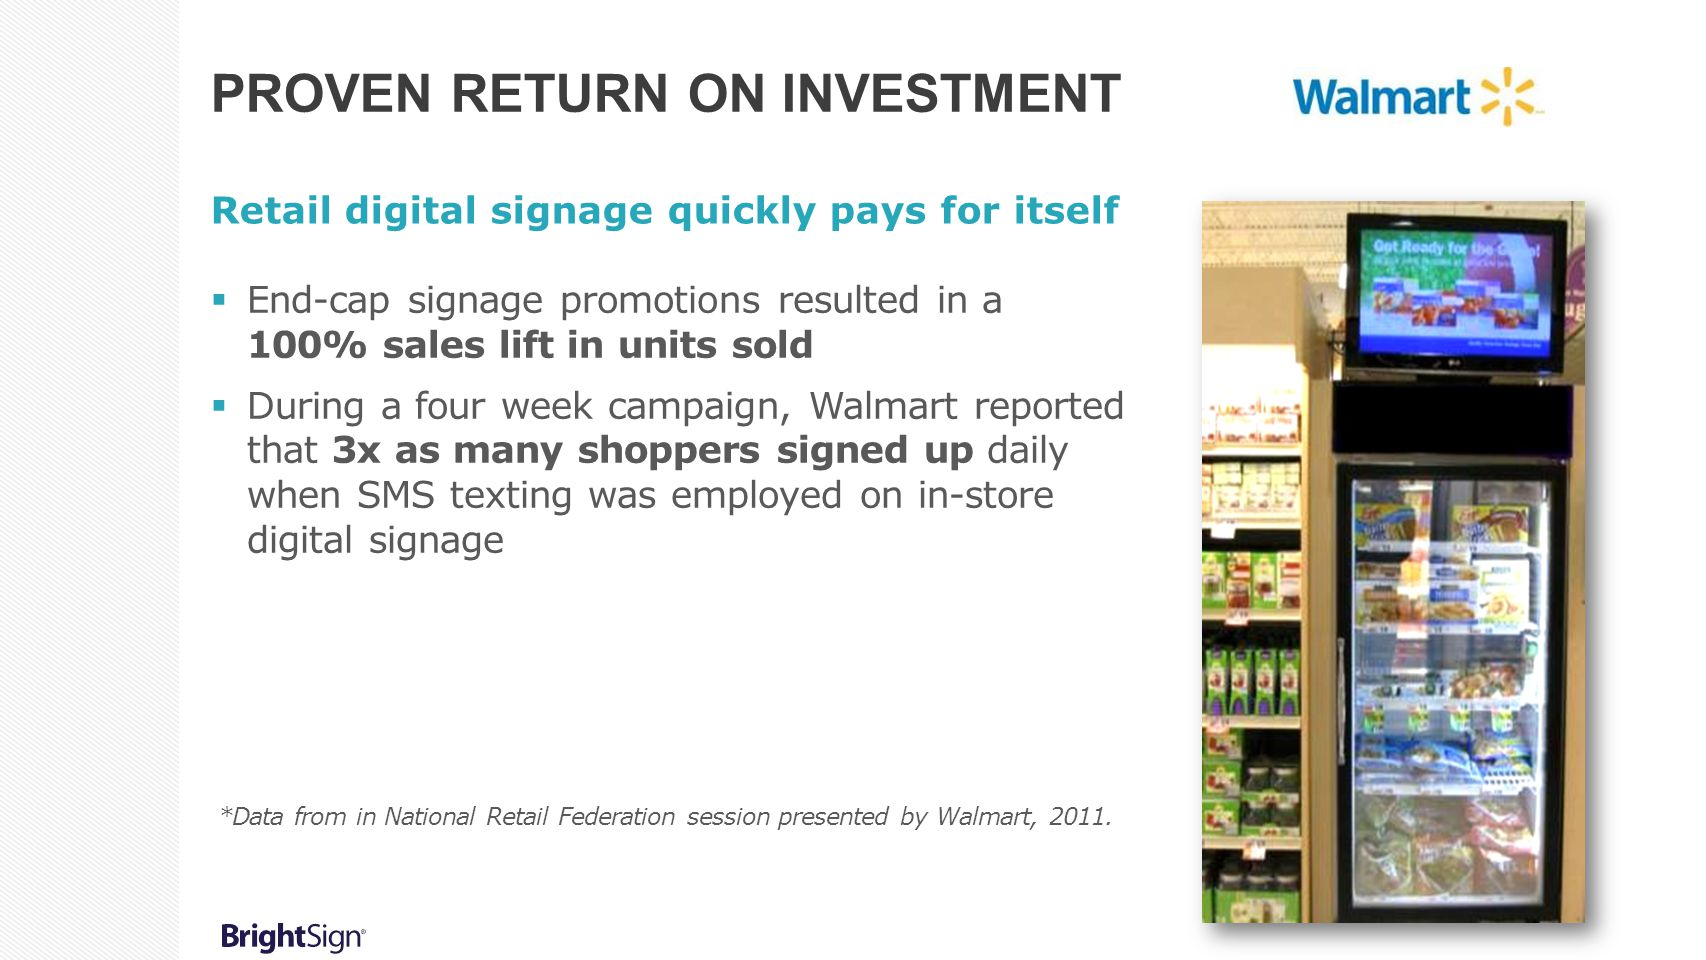 PROVEN RETURN ON INVESTMENT Retail digital signage quickly pays for itself  End-cap signage promotions resulted in a 100% sales lift in units sold 